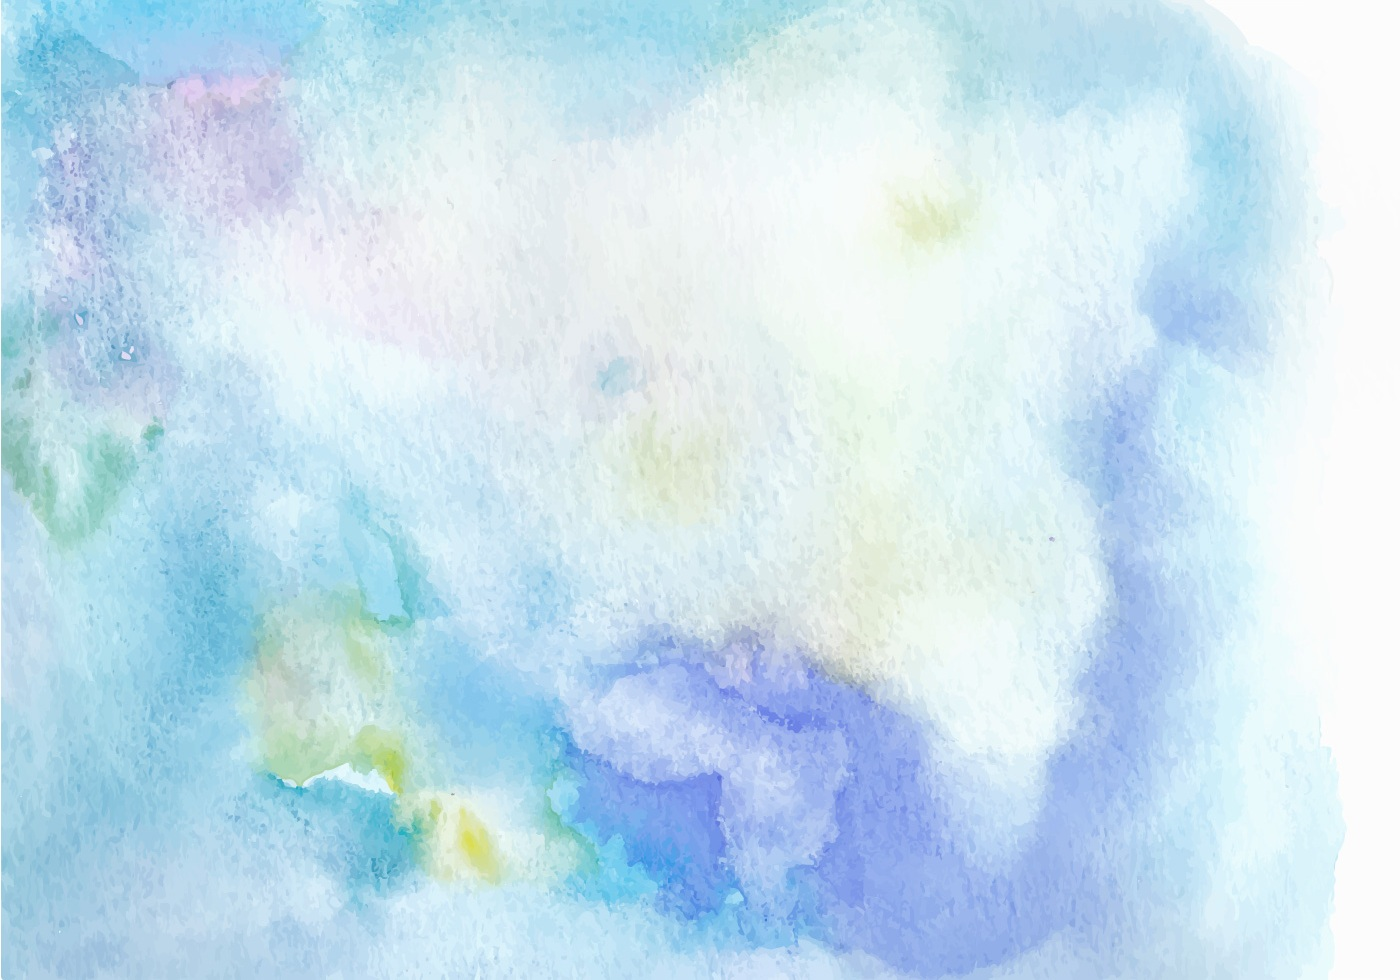 Light Blue Free Vector Watercolor Texture Download Free